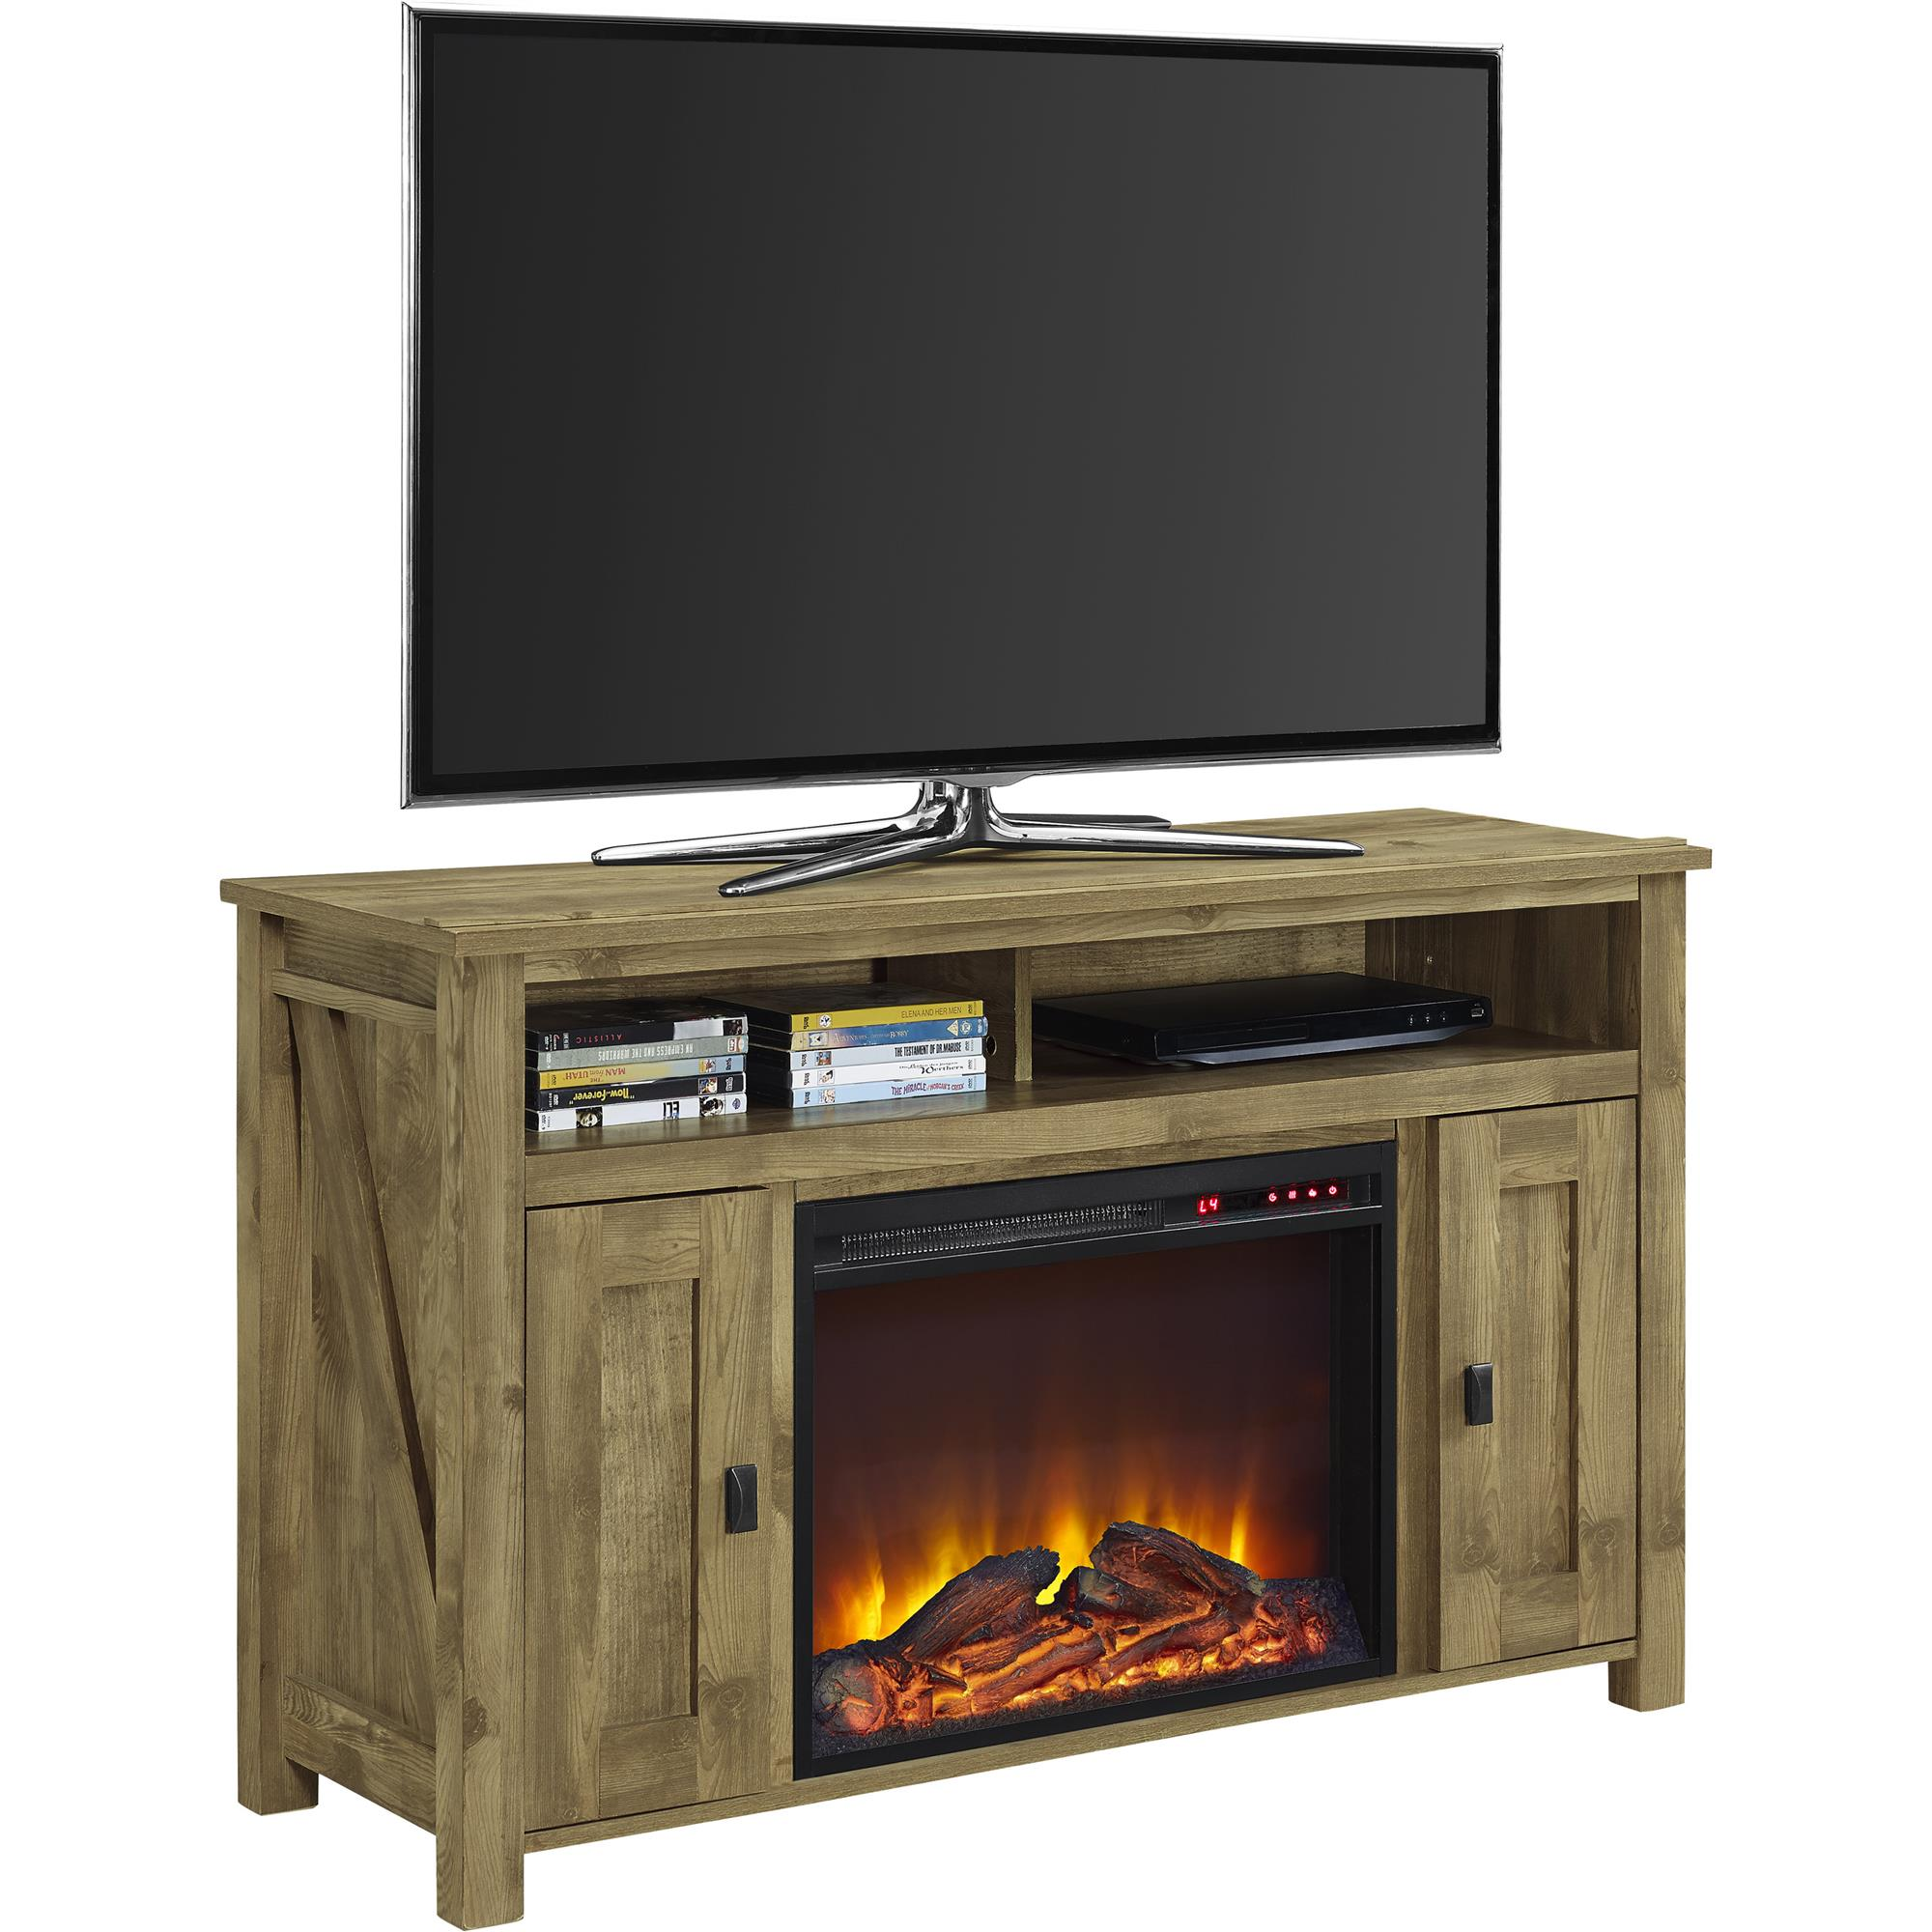 Ameriwood Home Farmington Electric Fireplace TV Console for TVs Multiple Colors and Sizes